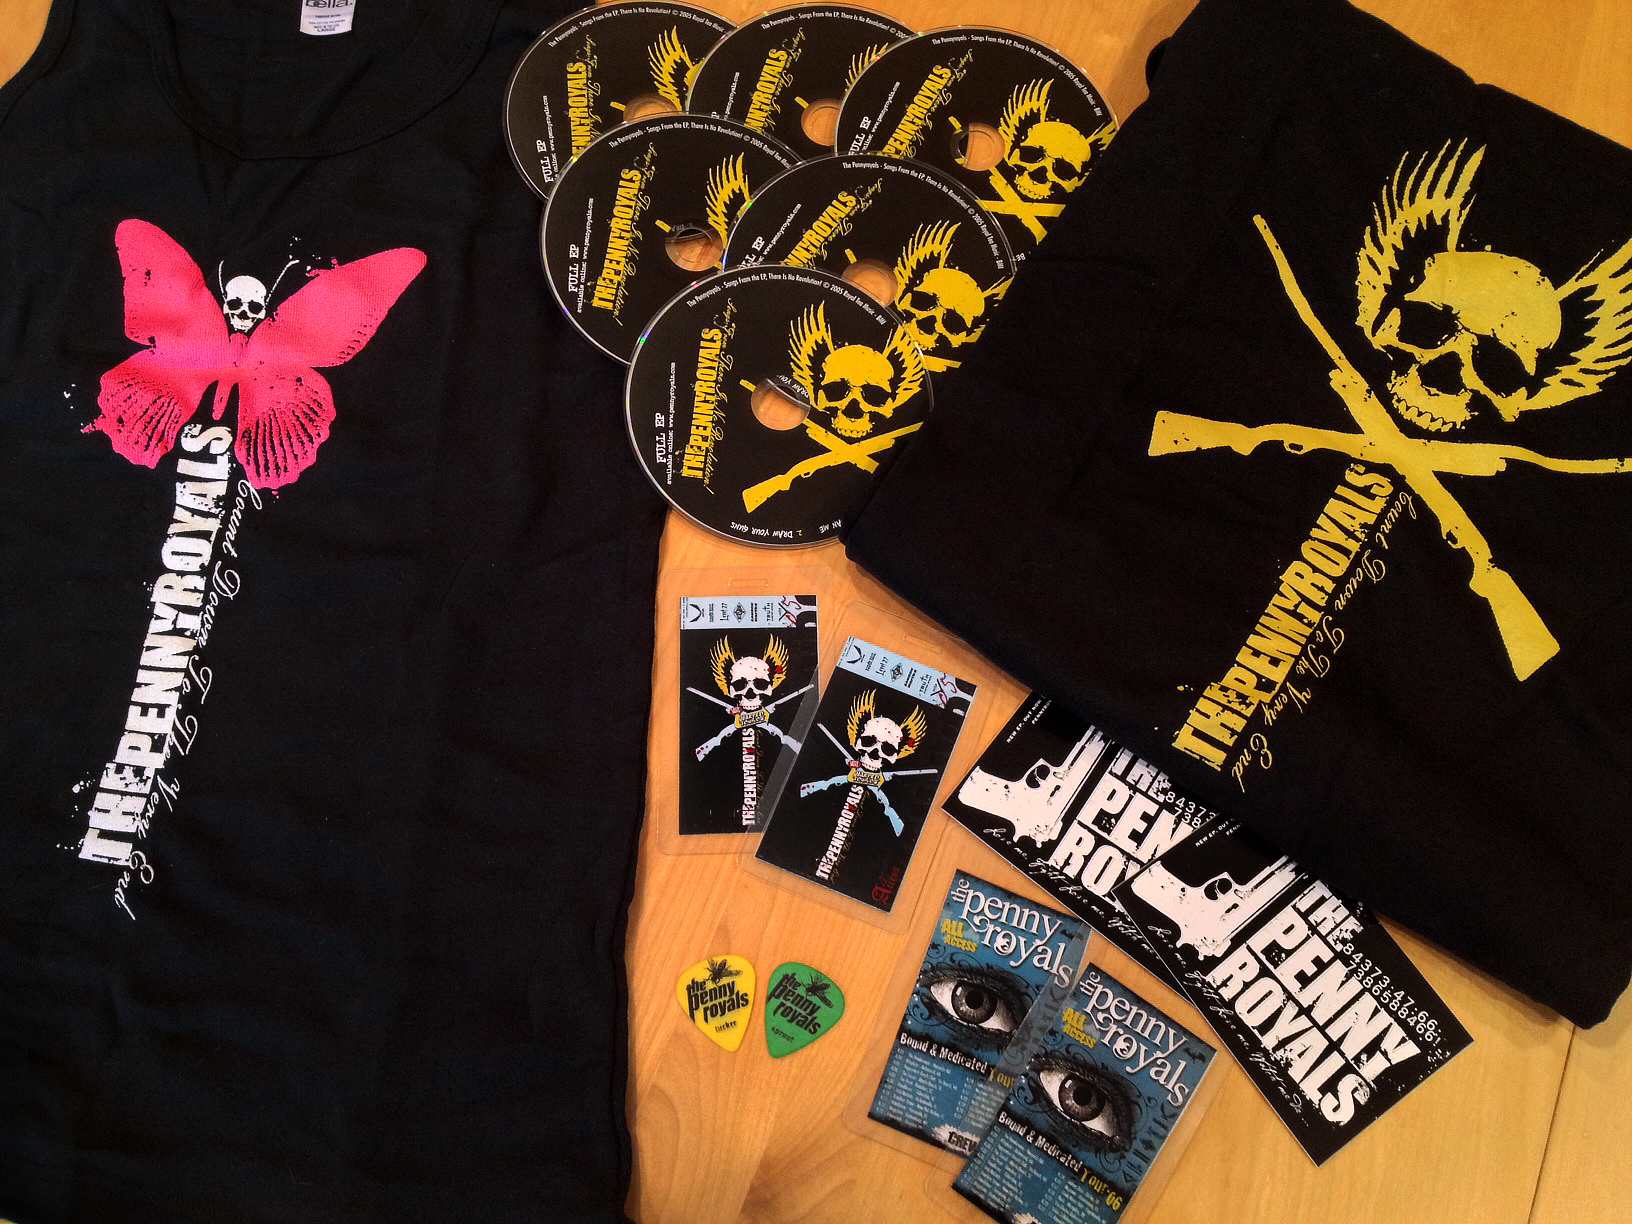 The Pennyroyals (Band Merchandise)